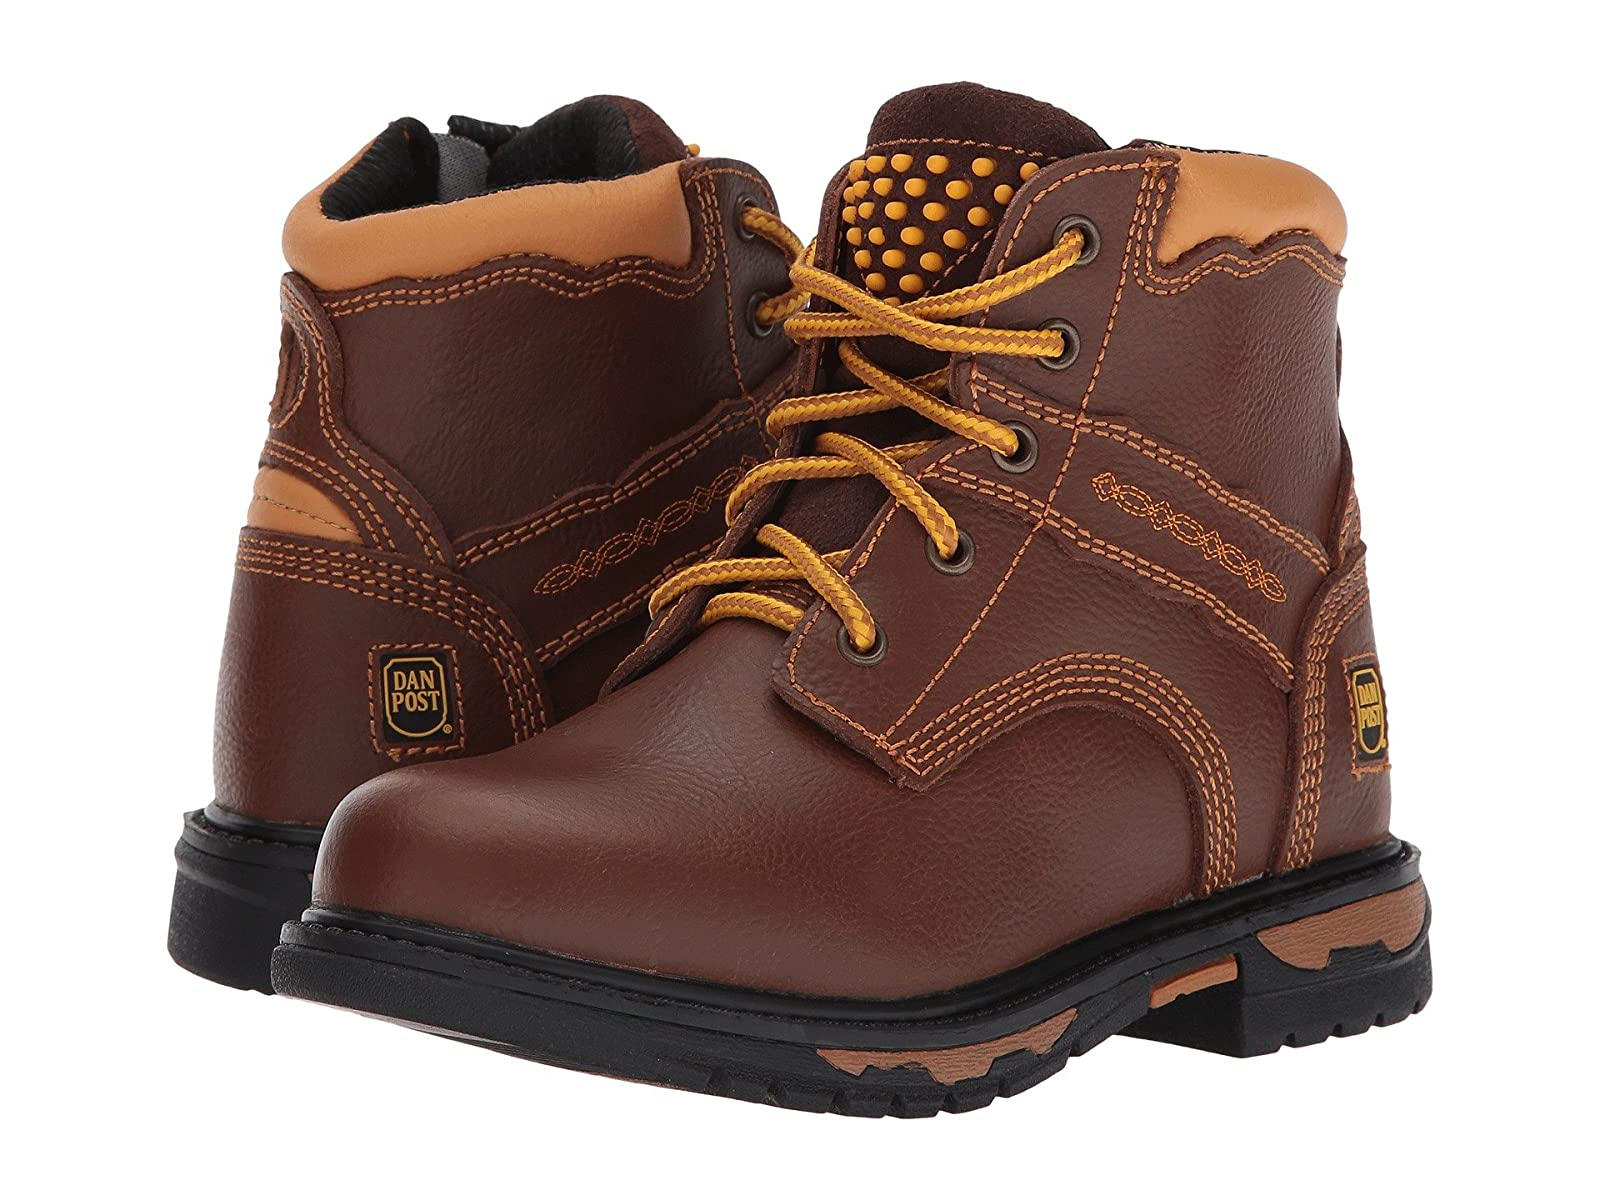 Dan Post Kids Zyon (Toddler/Little Kid)Cheap and distinctive eye-catching shoes